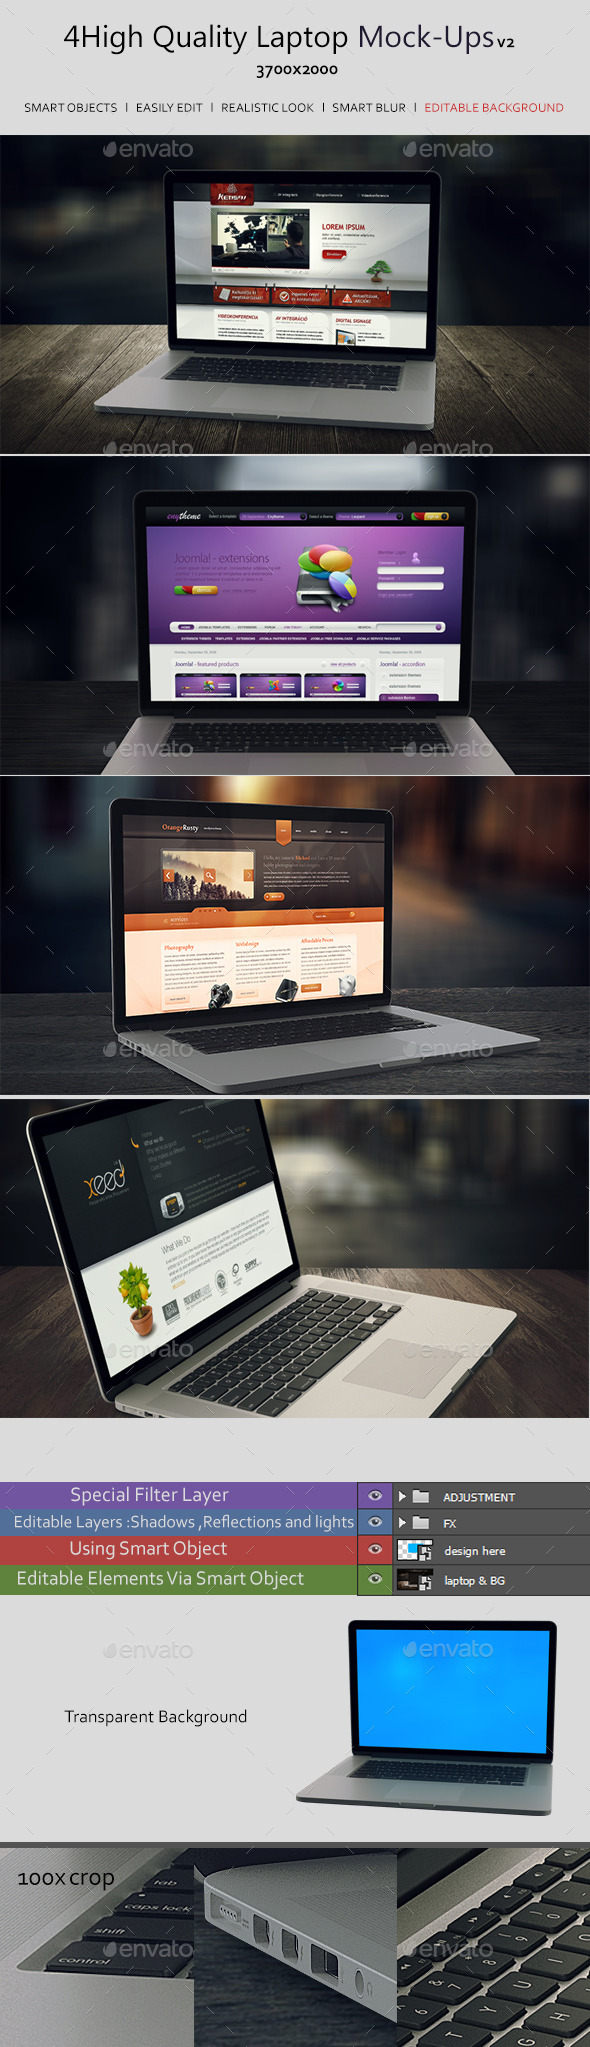 GraphicRiver 4 High Quality Laptop Mock-Ups v2 9298084